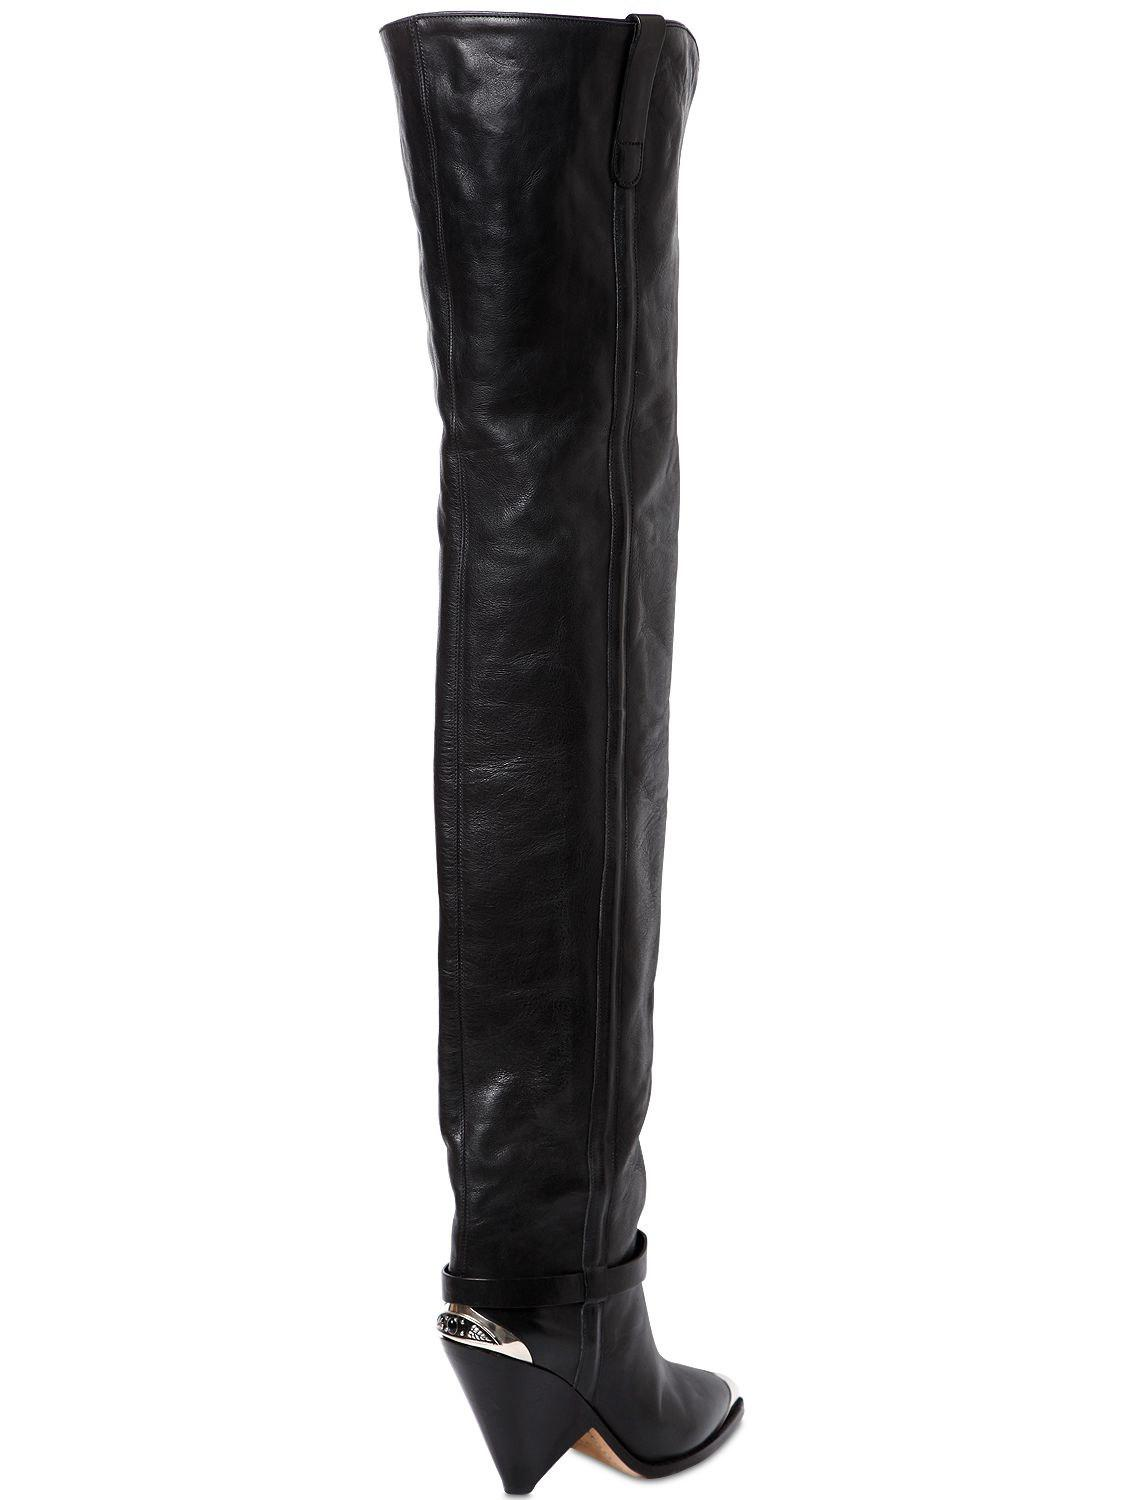 9a21266e4a9 Isabel Marant 90mm Lafsten Leather Over The Knee Boots in Black - Lyst